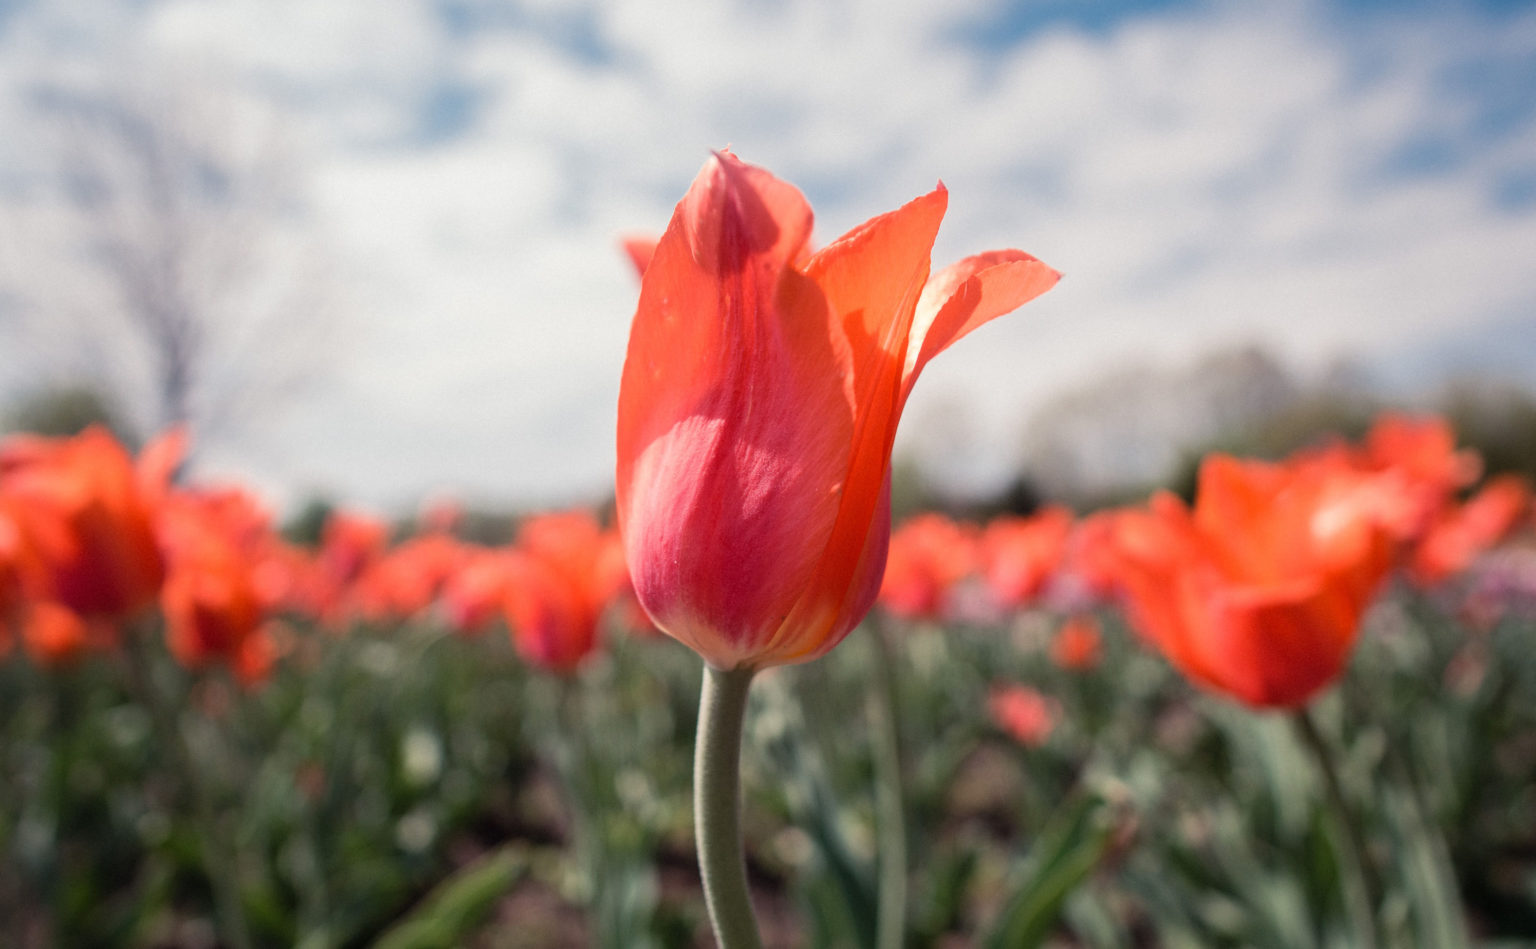 Red tulip amidst a tulip field in the Netherlands